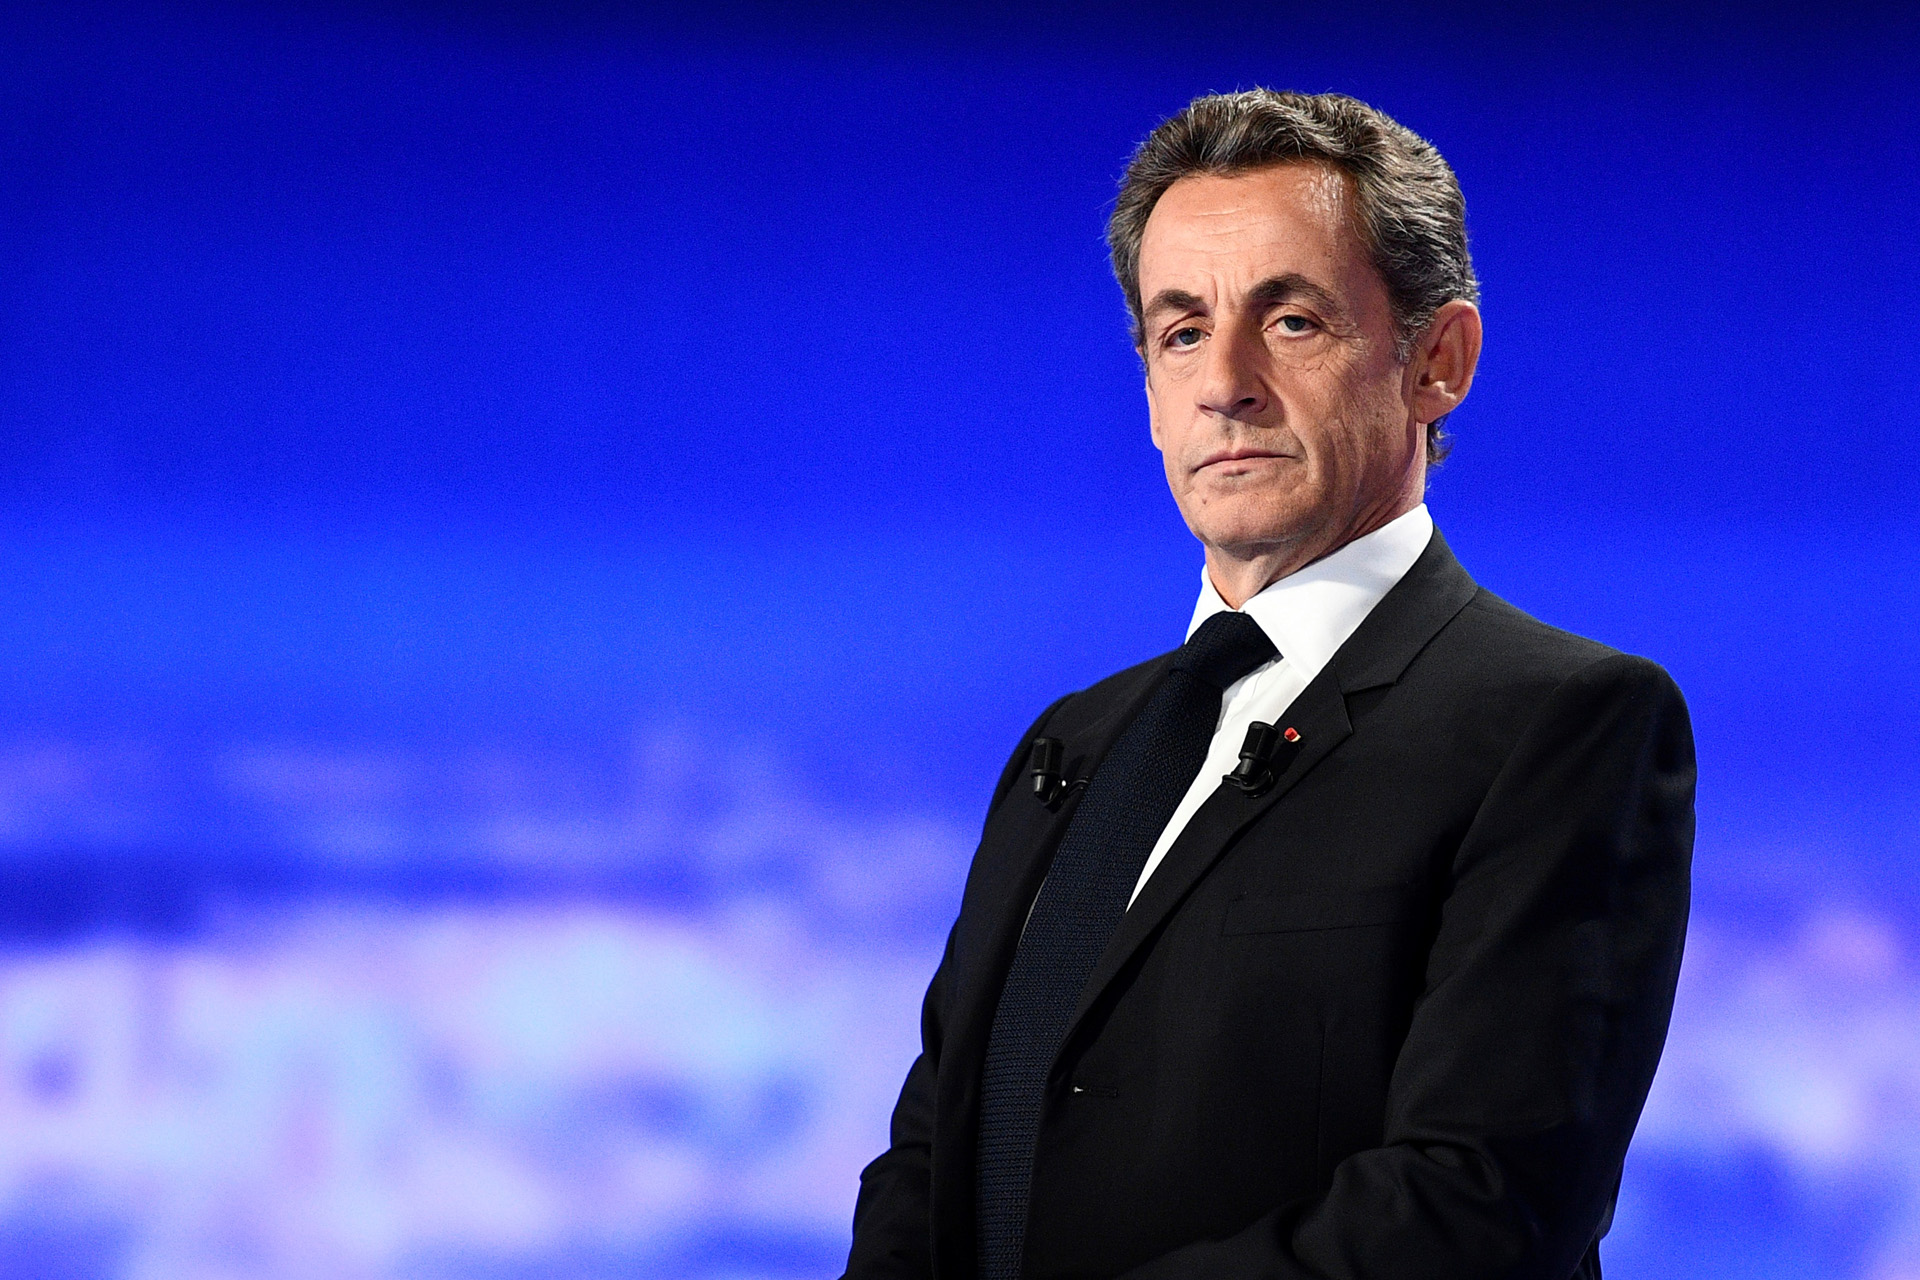 (FILES) In this file photo taken on October 13, 2016 Former French President and candidate for the right-wing Les Republicains (LR) party primaries Nicolas Sarkozy takes part in the first televised debate between the seven candidates for France's right-wing presidential nomination ahead of the 2017 presidential election, at the studios of French private television channel TF1 in La Plaine-Saint-Denis, north of Paris. - The Paris Court of Appeal is set to deliberate on September 24, 2020 on the appeals for nullity filed, among others, by Nicolas Sarkozy, Claude Gueant and businessman Alexandre Djouhri, against the investigation into suspicions of Libyan financing by the candidate of the right in the 2007 presidential campaign. (Photo by Martin BUREAU / various sources / AFP)